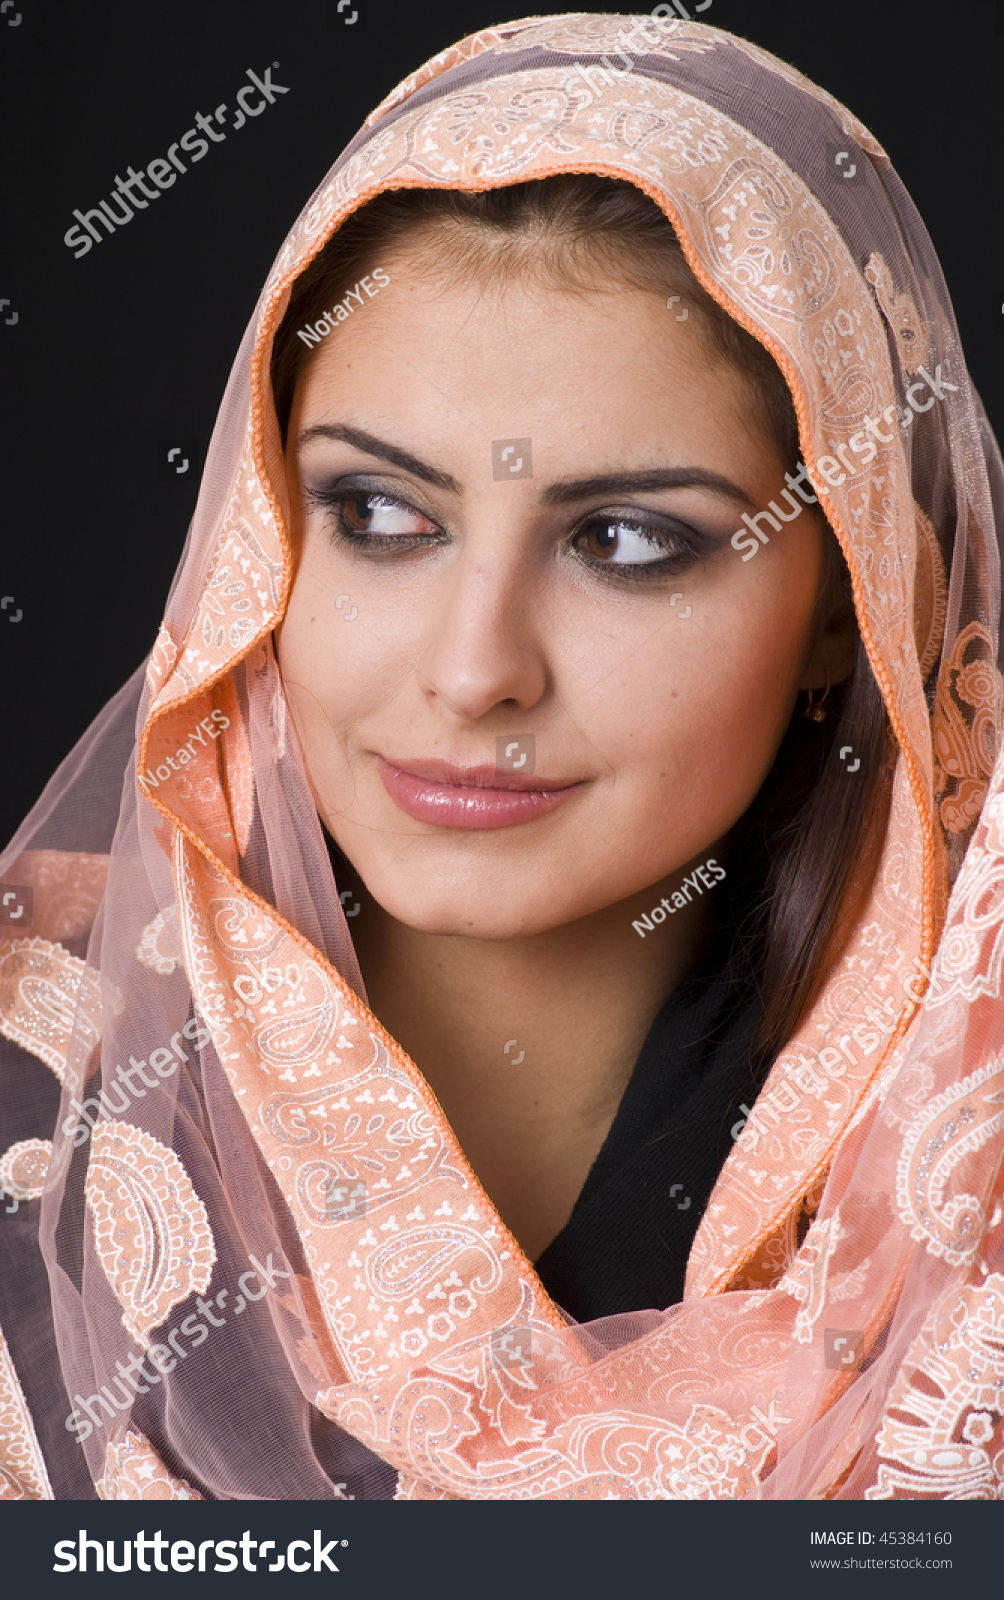 browns muslim girl personals Muslim dating at muslimacom sign up in a misunderstanding of what online dating is muslim online dating opens up a whole new a girl aged 23 years old.